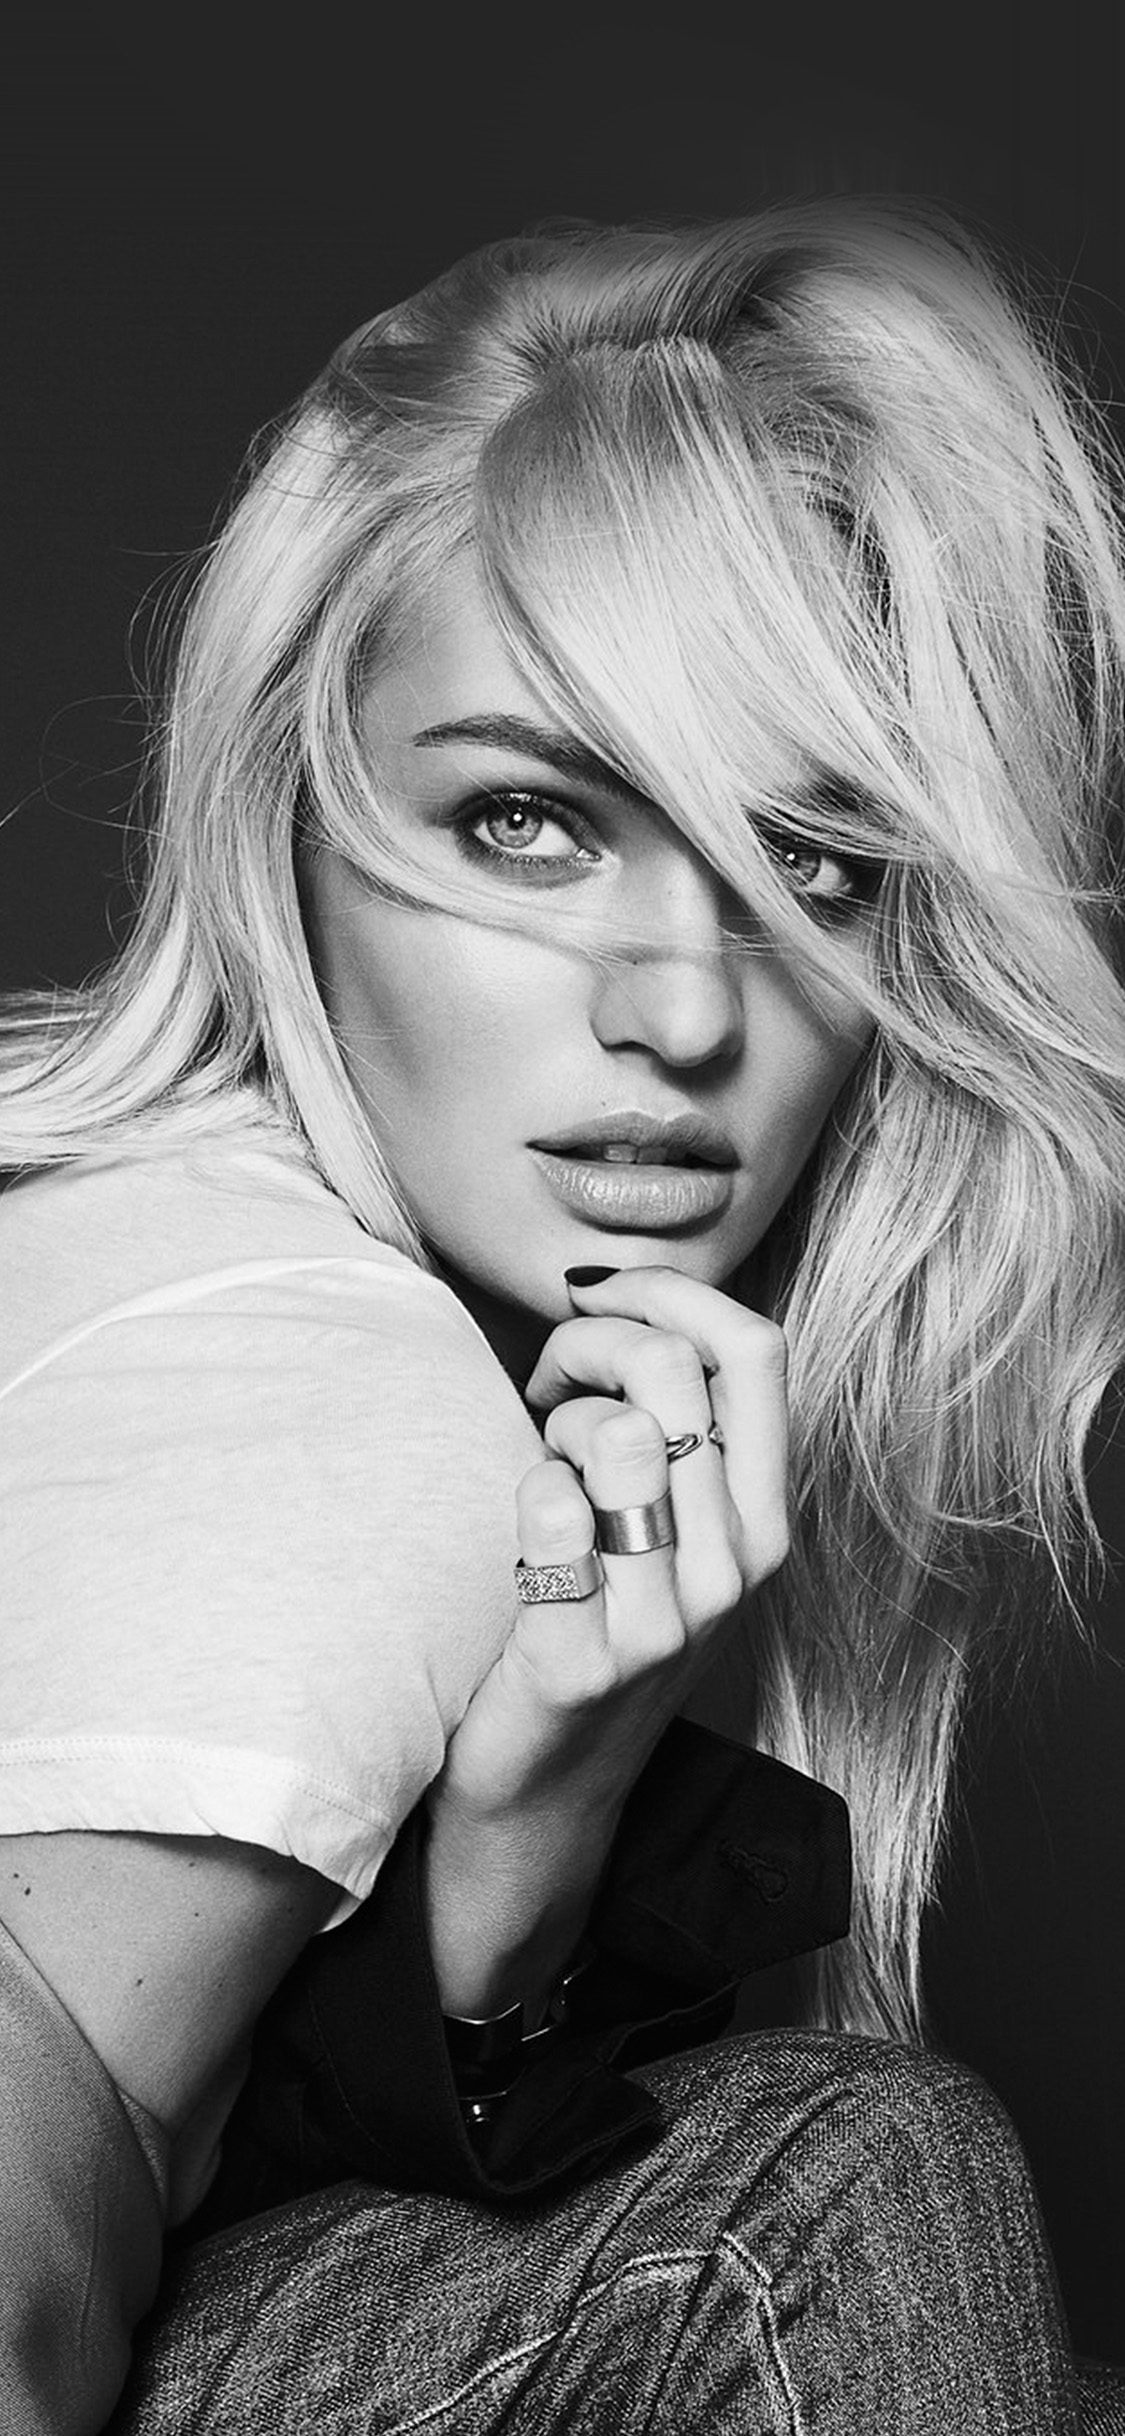 iPhonexpapers.com-Apple-iPhone-wallpaper-hp68-model-girl-candice-swanepoel-bw